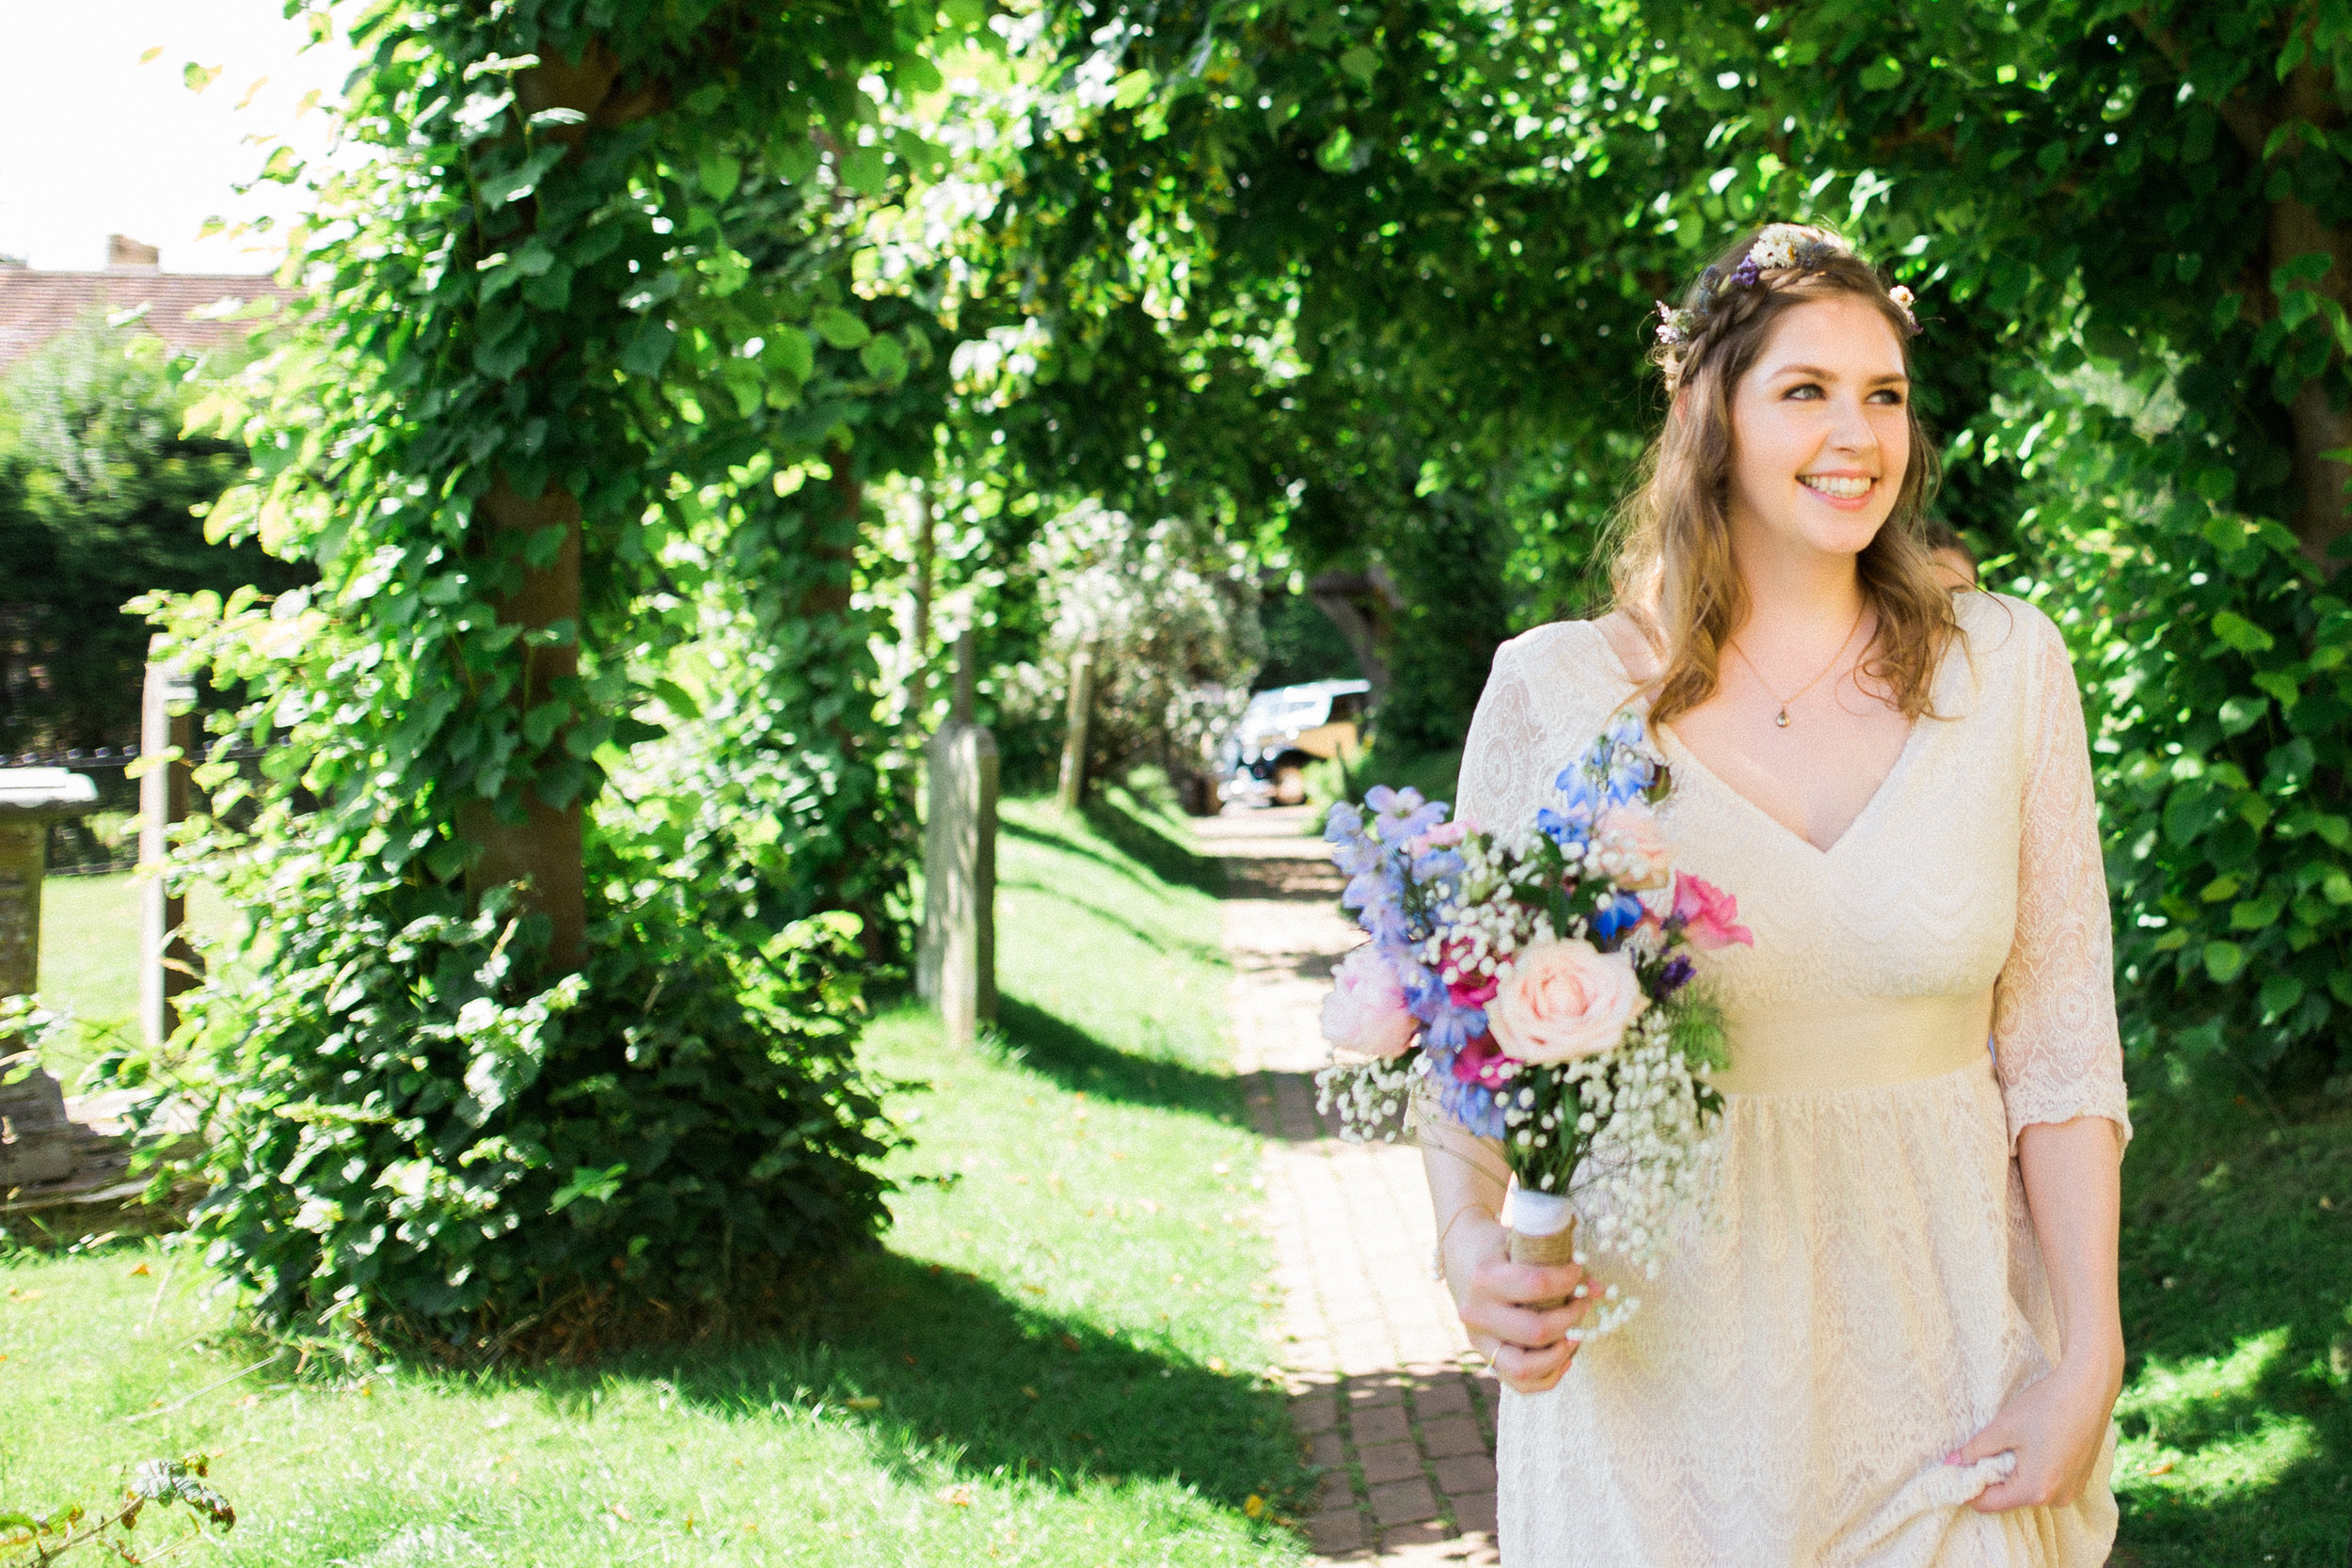 Islay-simply-beautiful-wedding-hair-bride-bridal-speldhurst-tunbridge-wells-kent